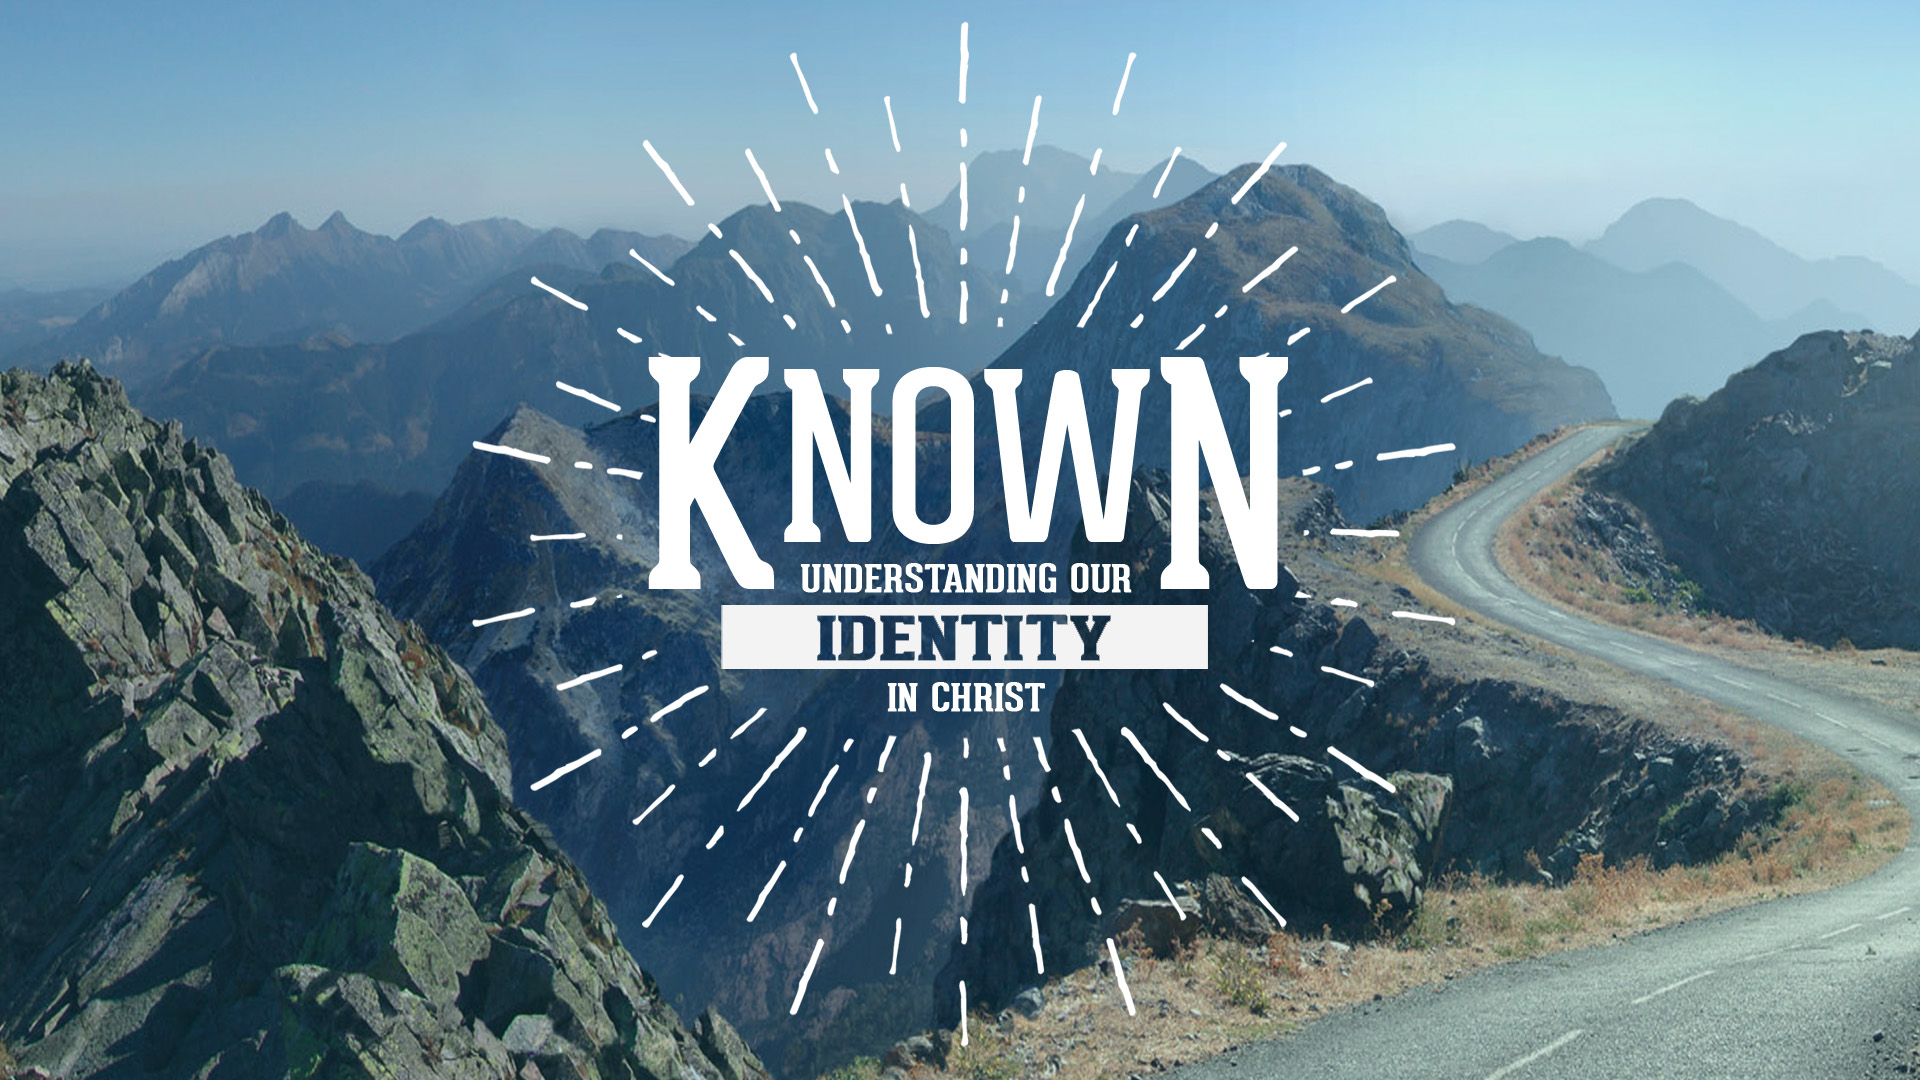 Known - Understanding Our Identity in Christ - Sermon Series